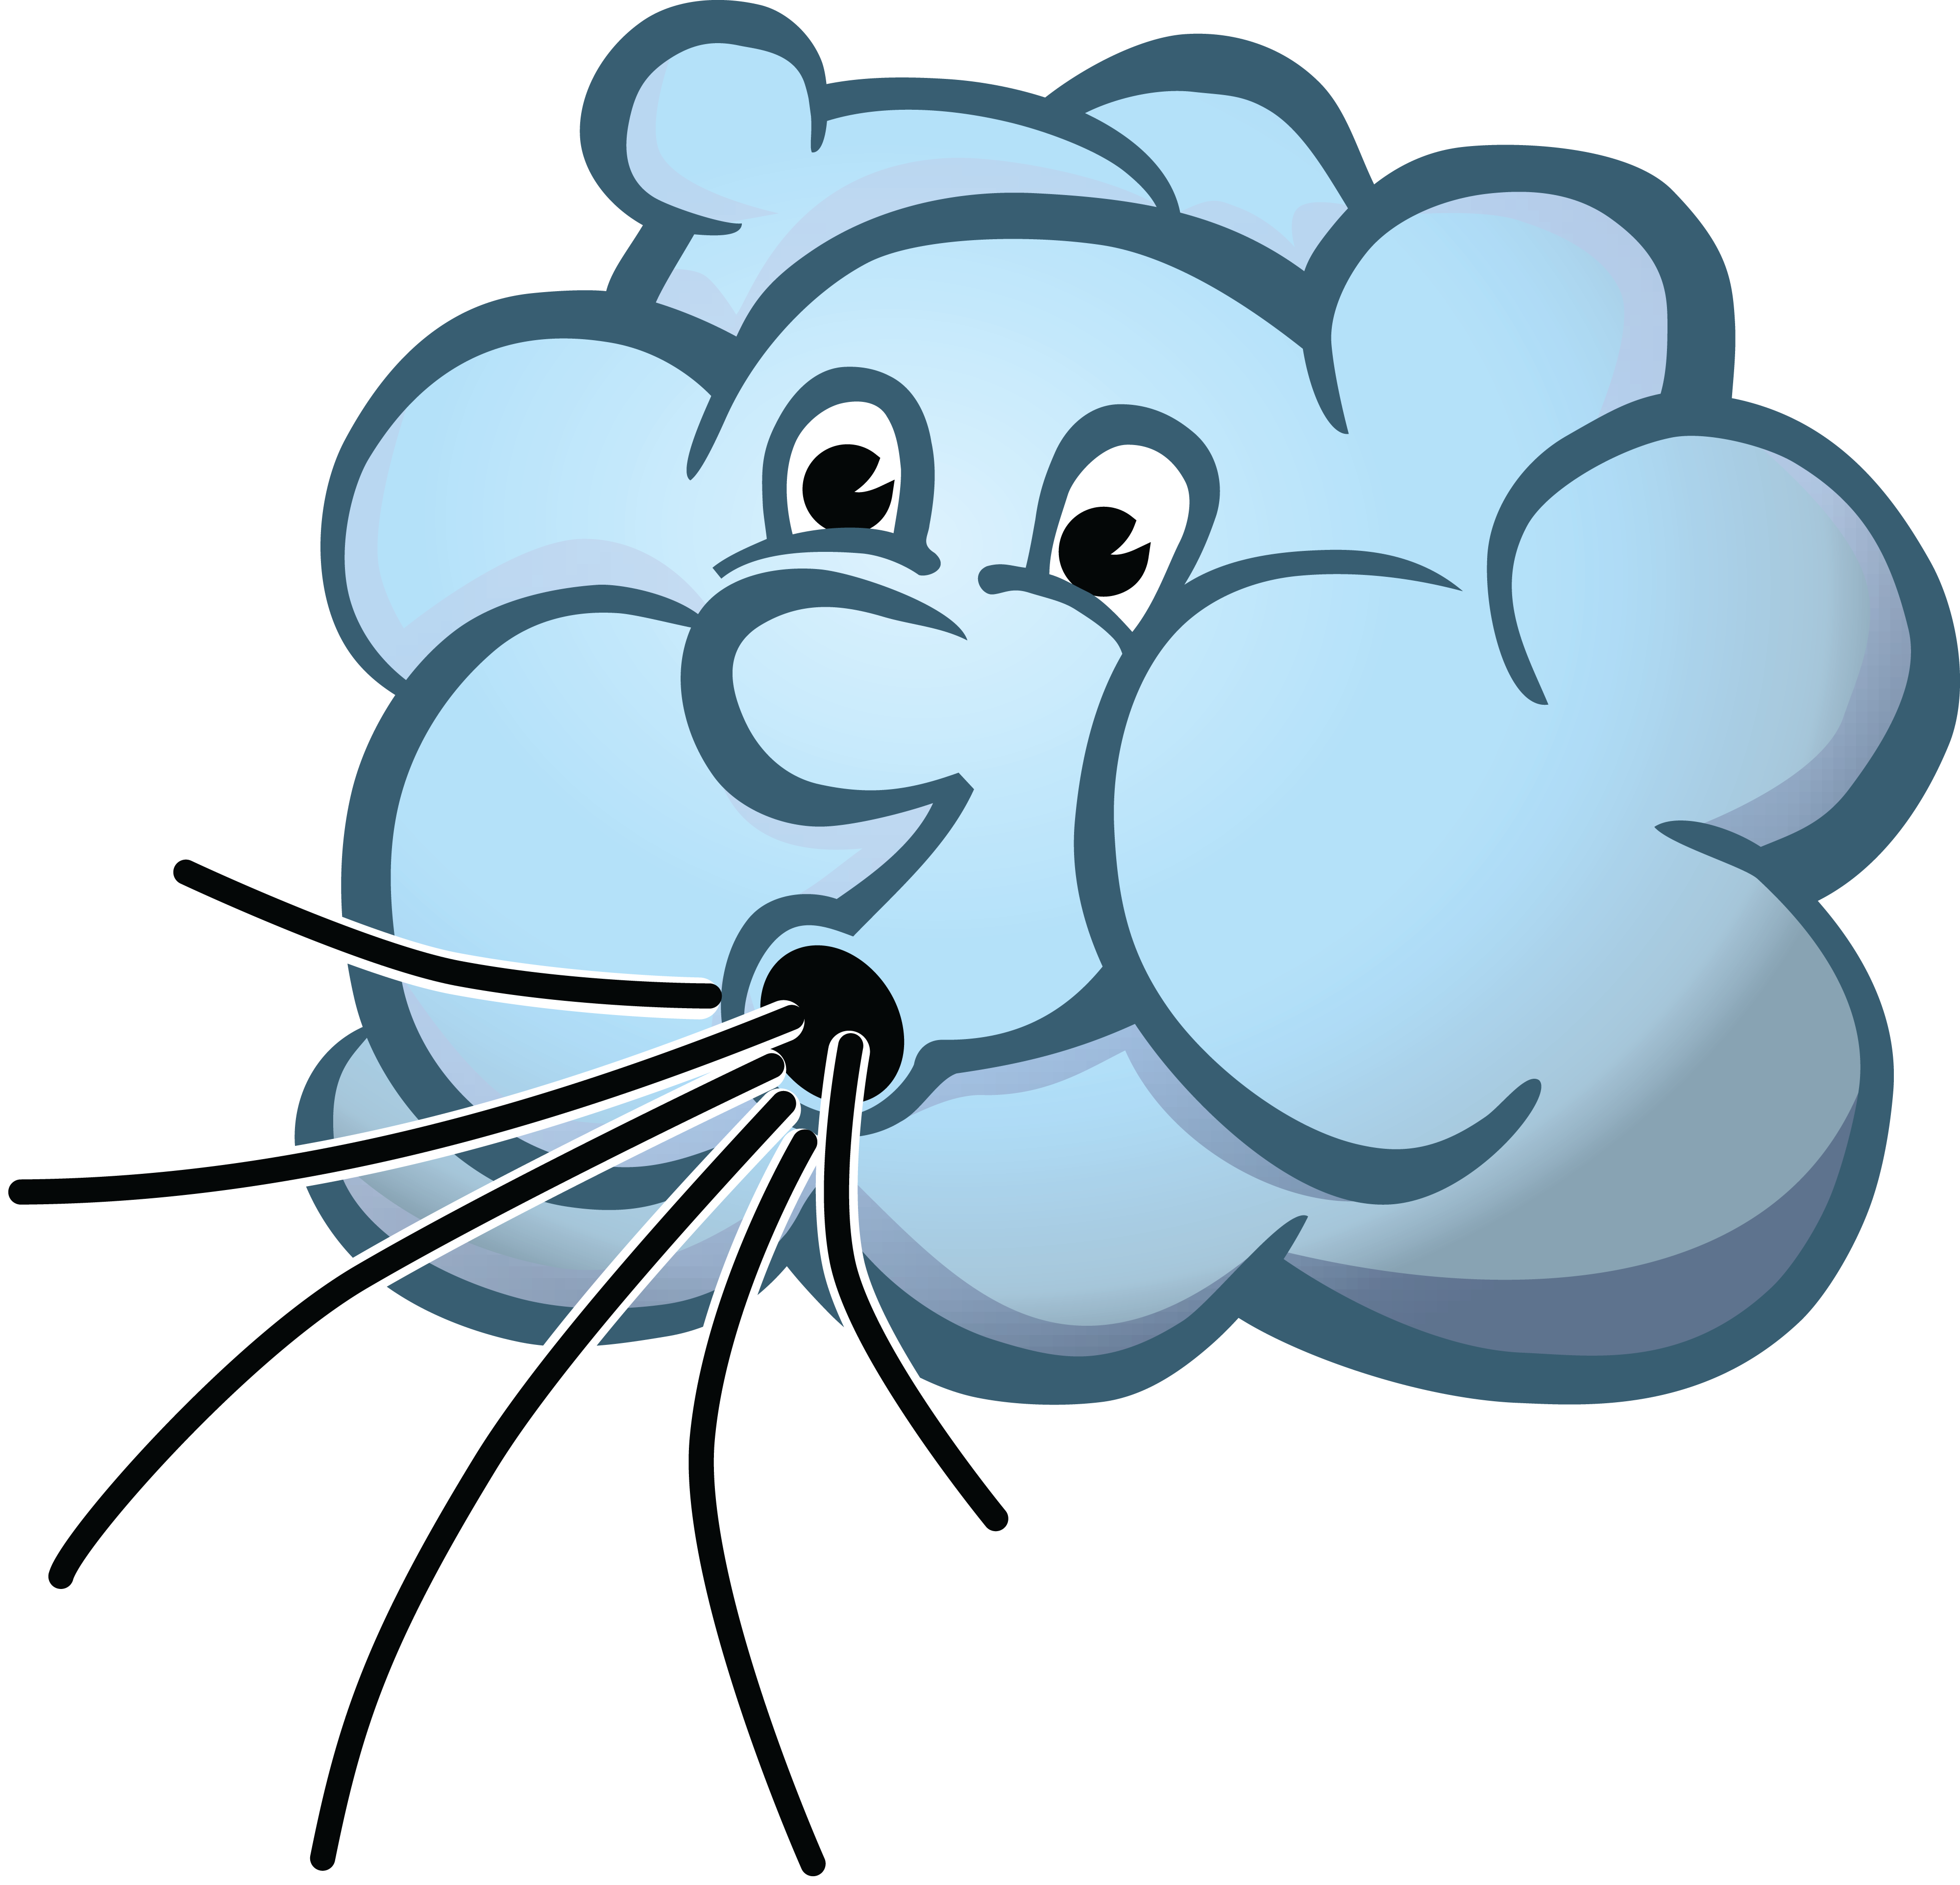 Cloud wind clip art. Hurricane clipart stormy day